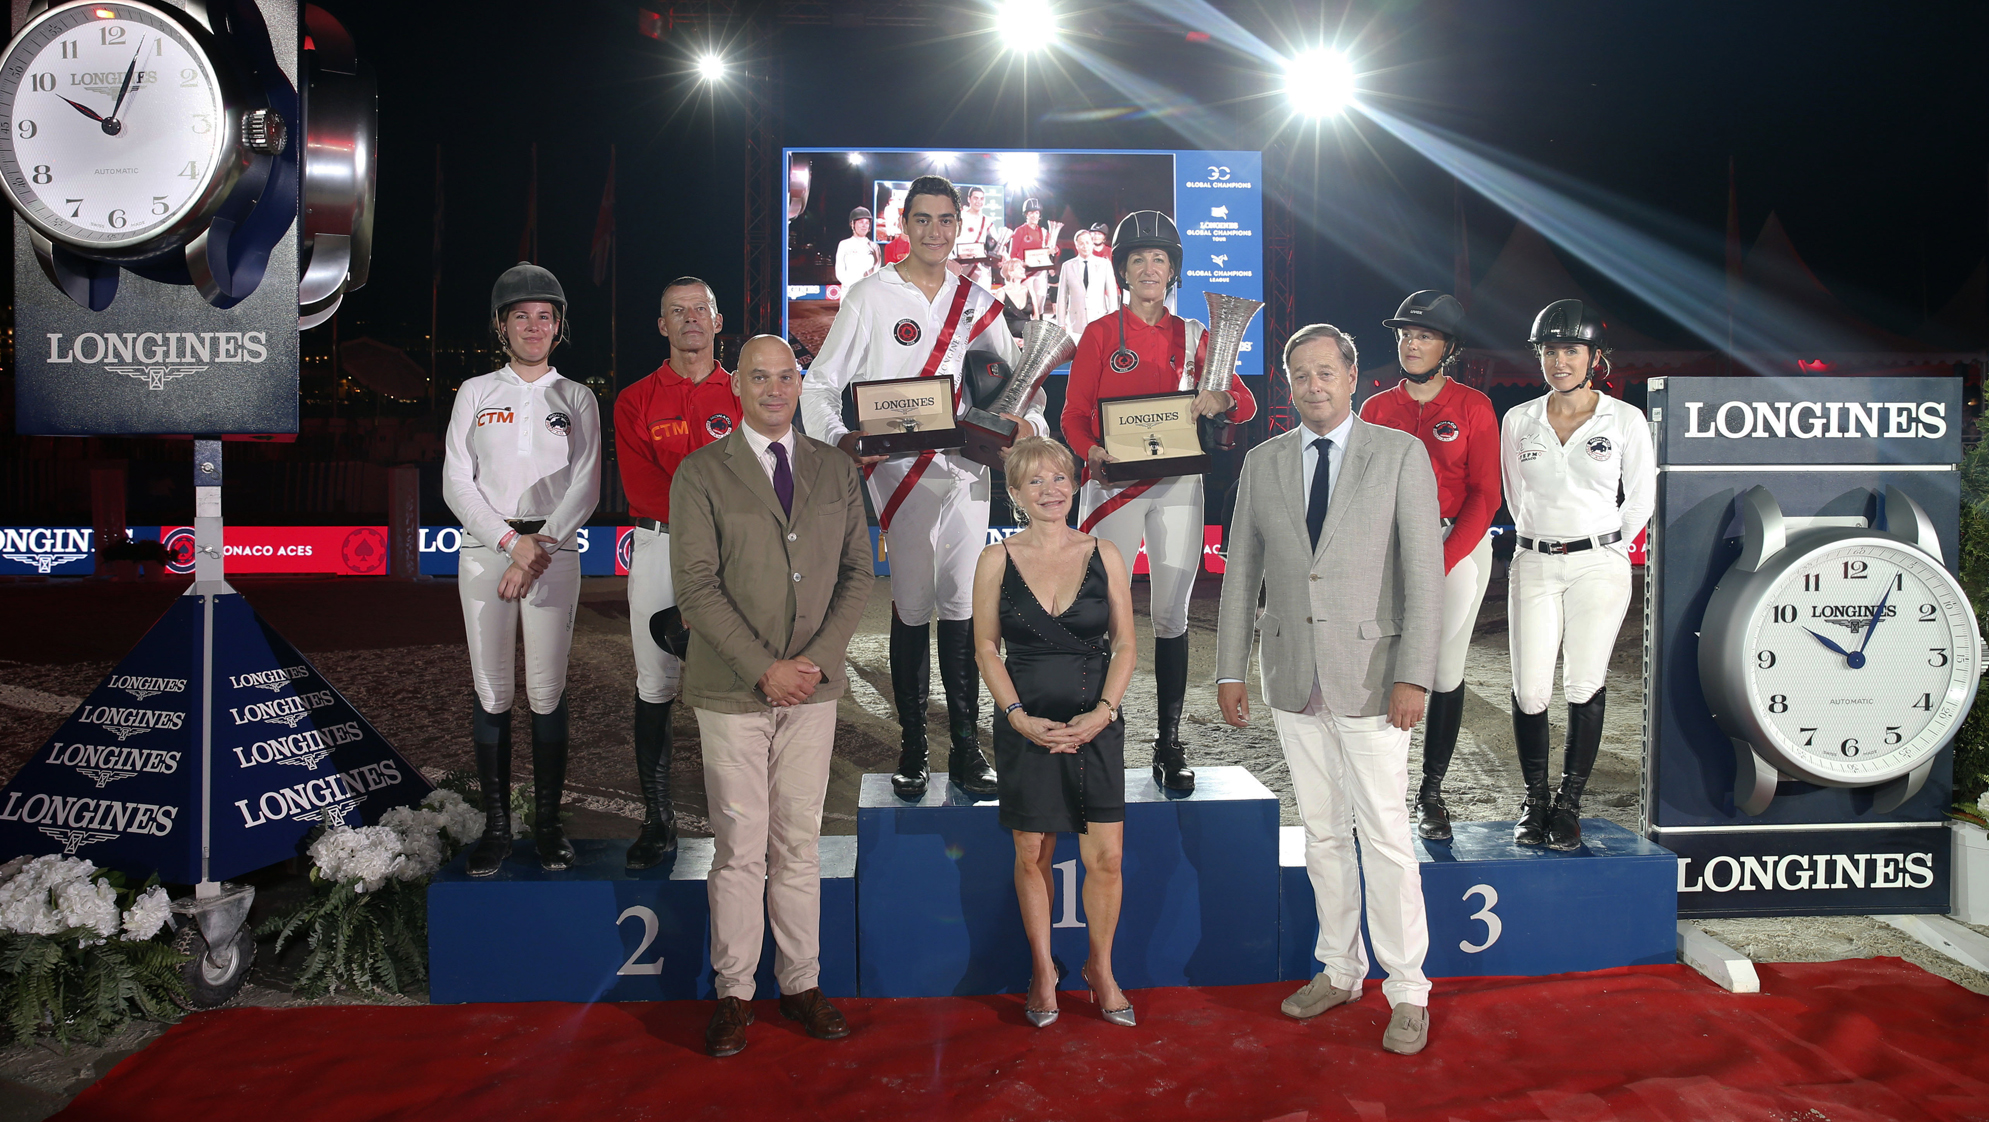 Future stars shine bright in Longines Pro-Am Cup